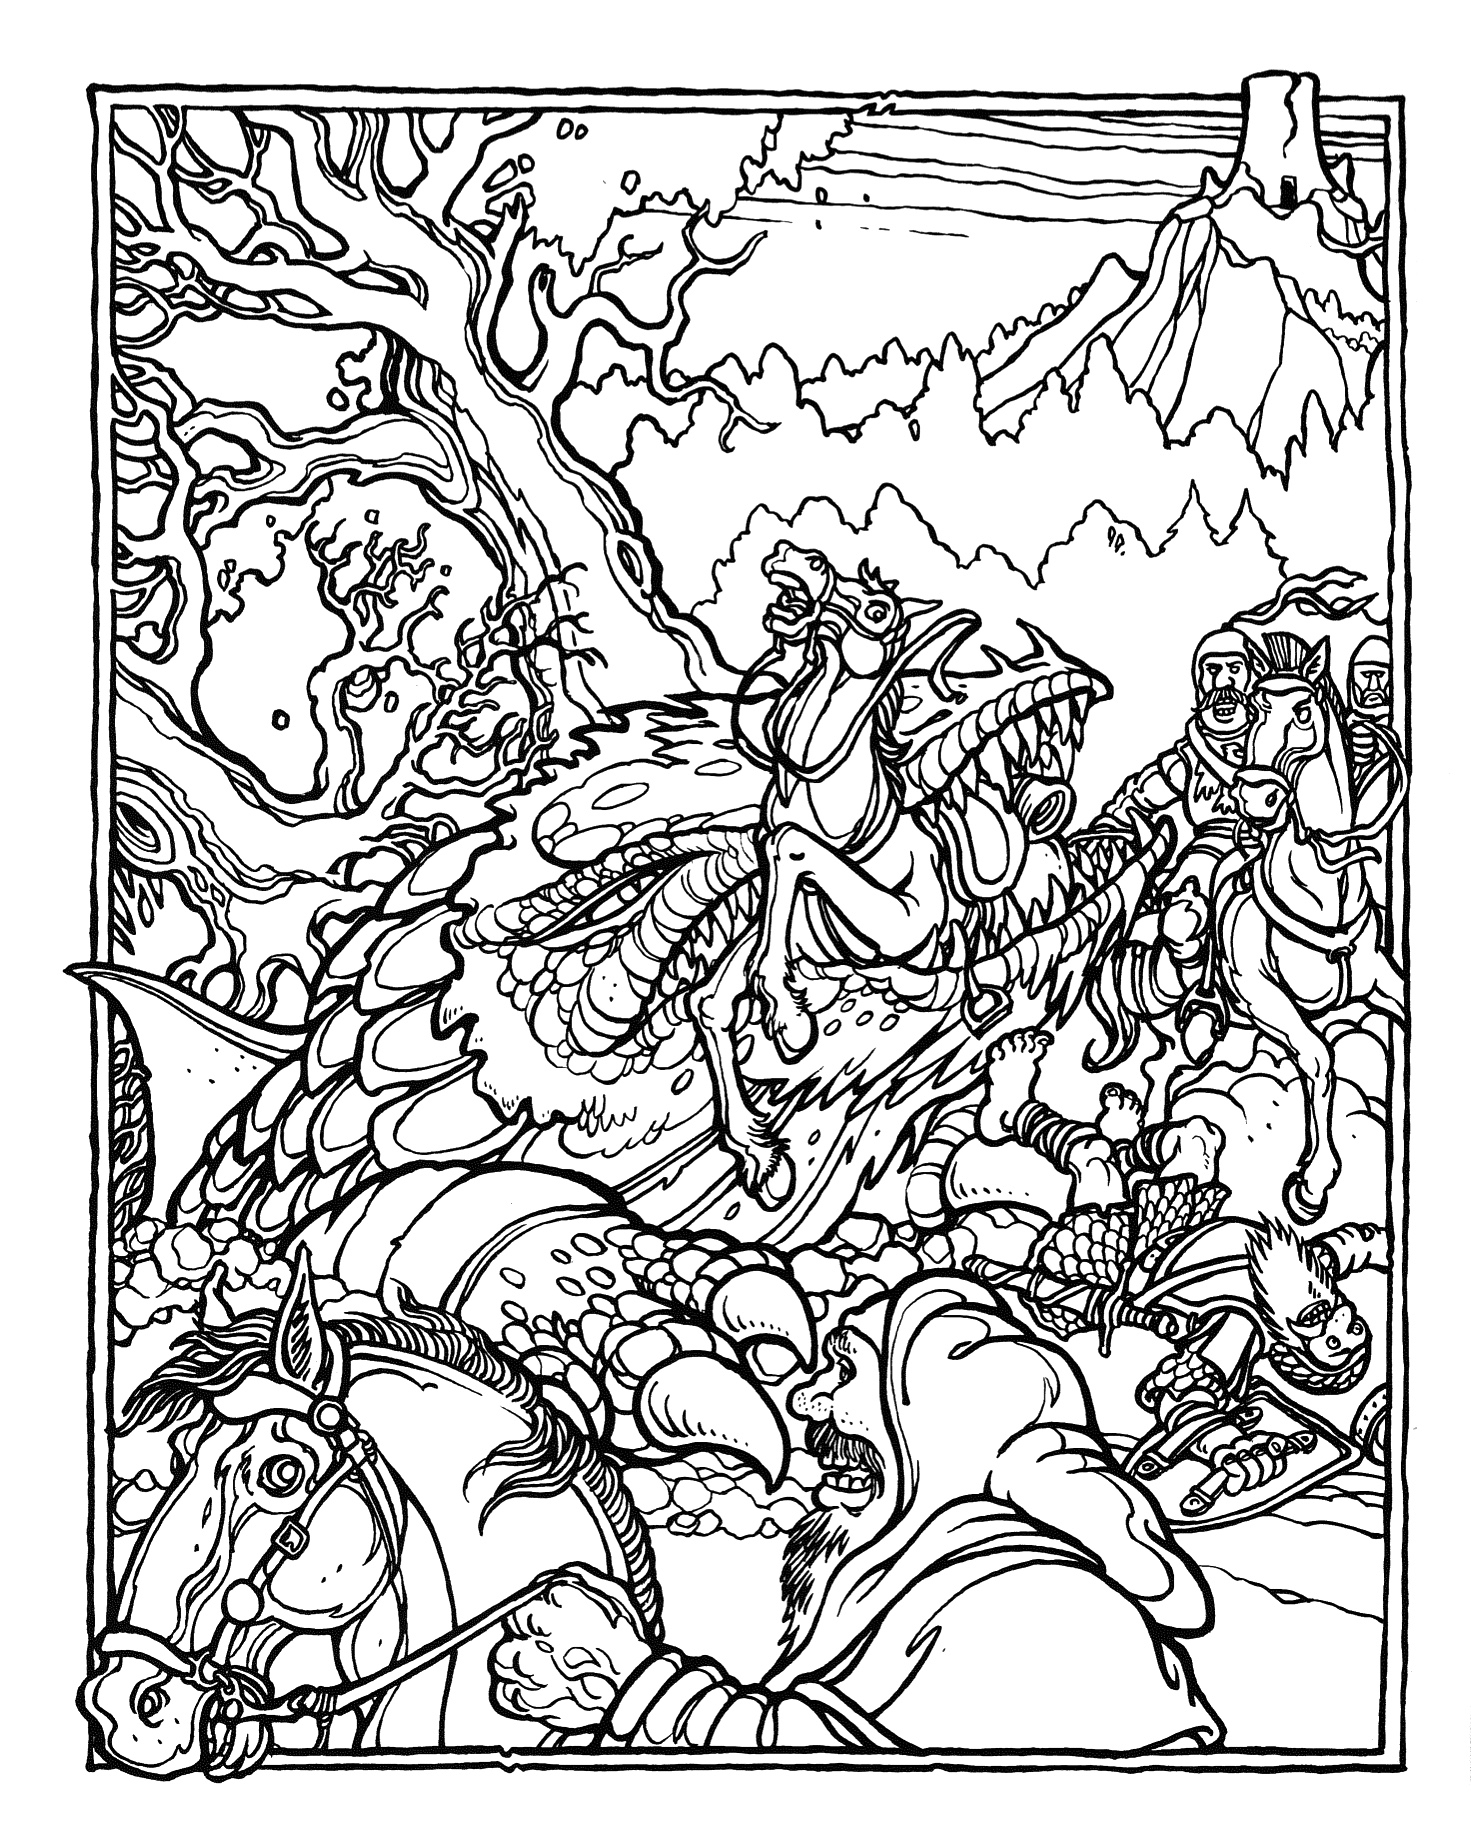 d is for dragon coloring page dungeons and dragons dragon coloring page coloring coloring is page d for dragon